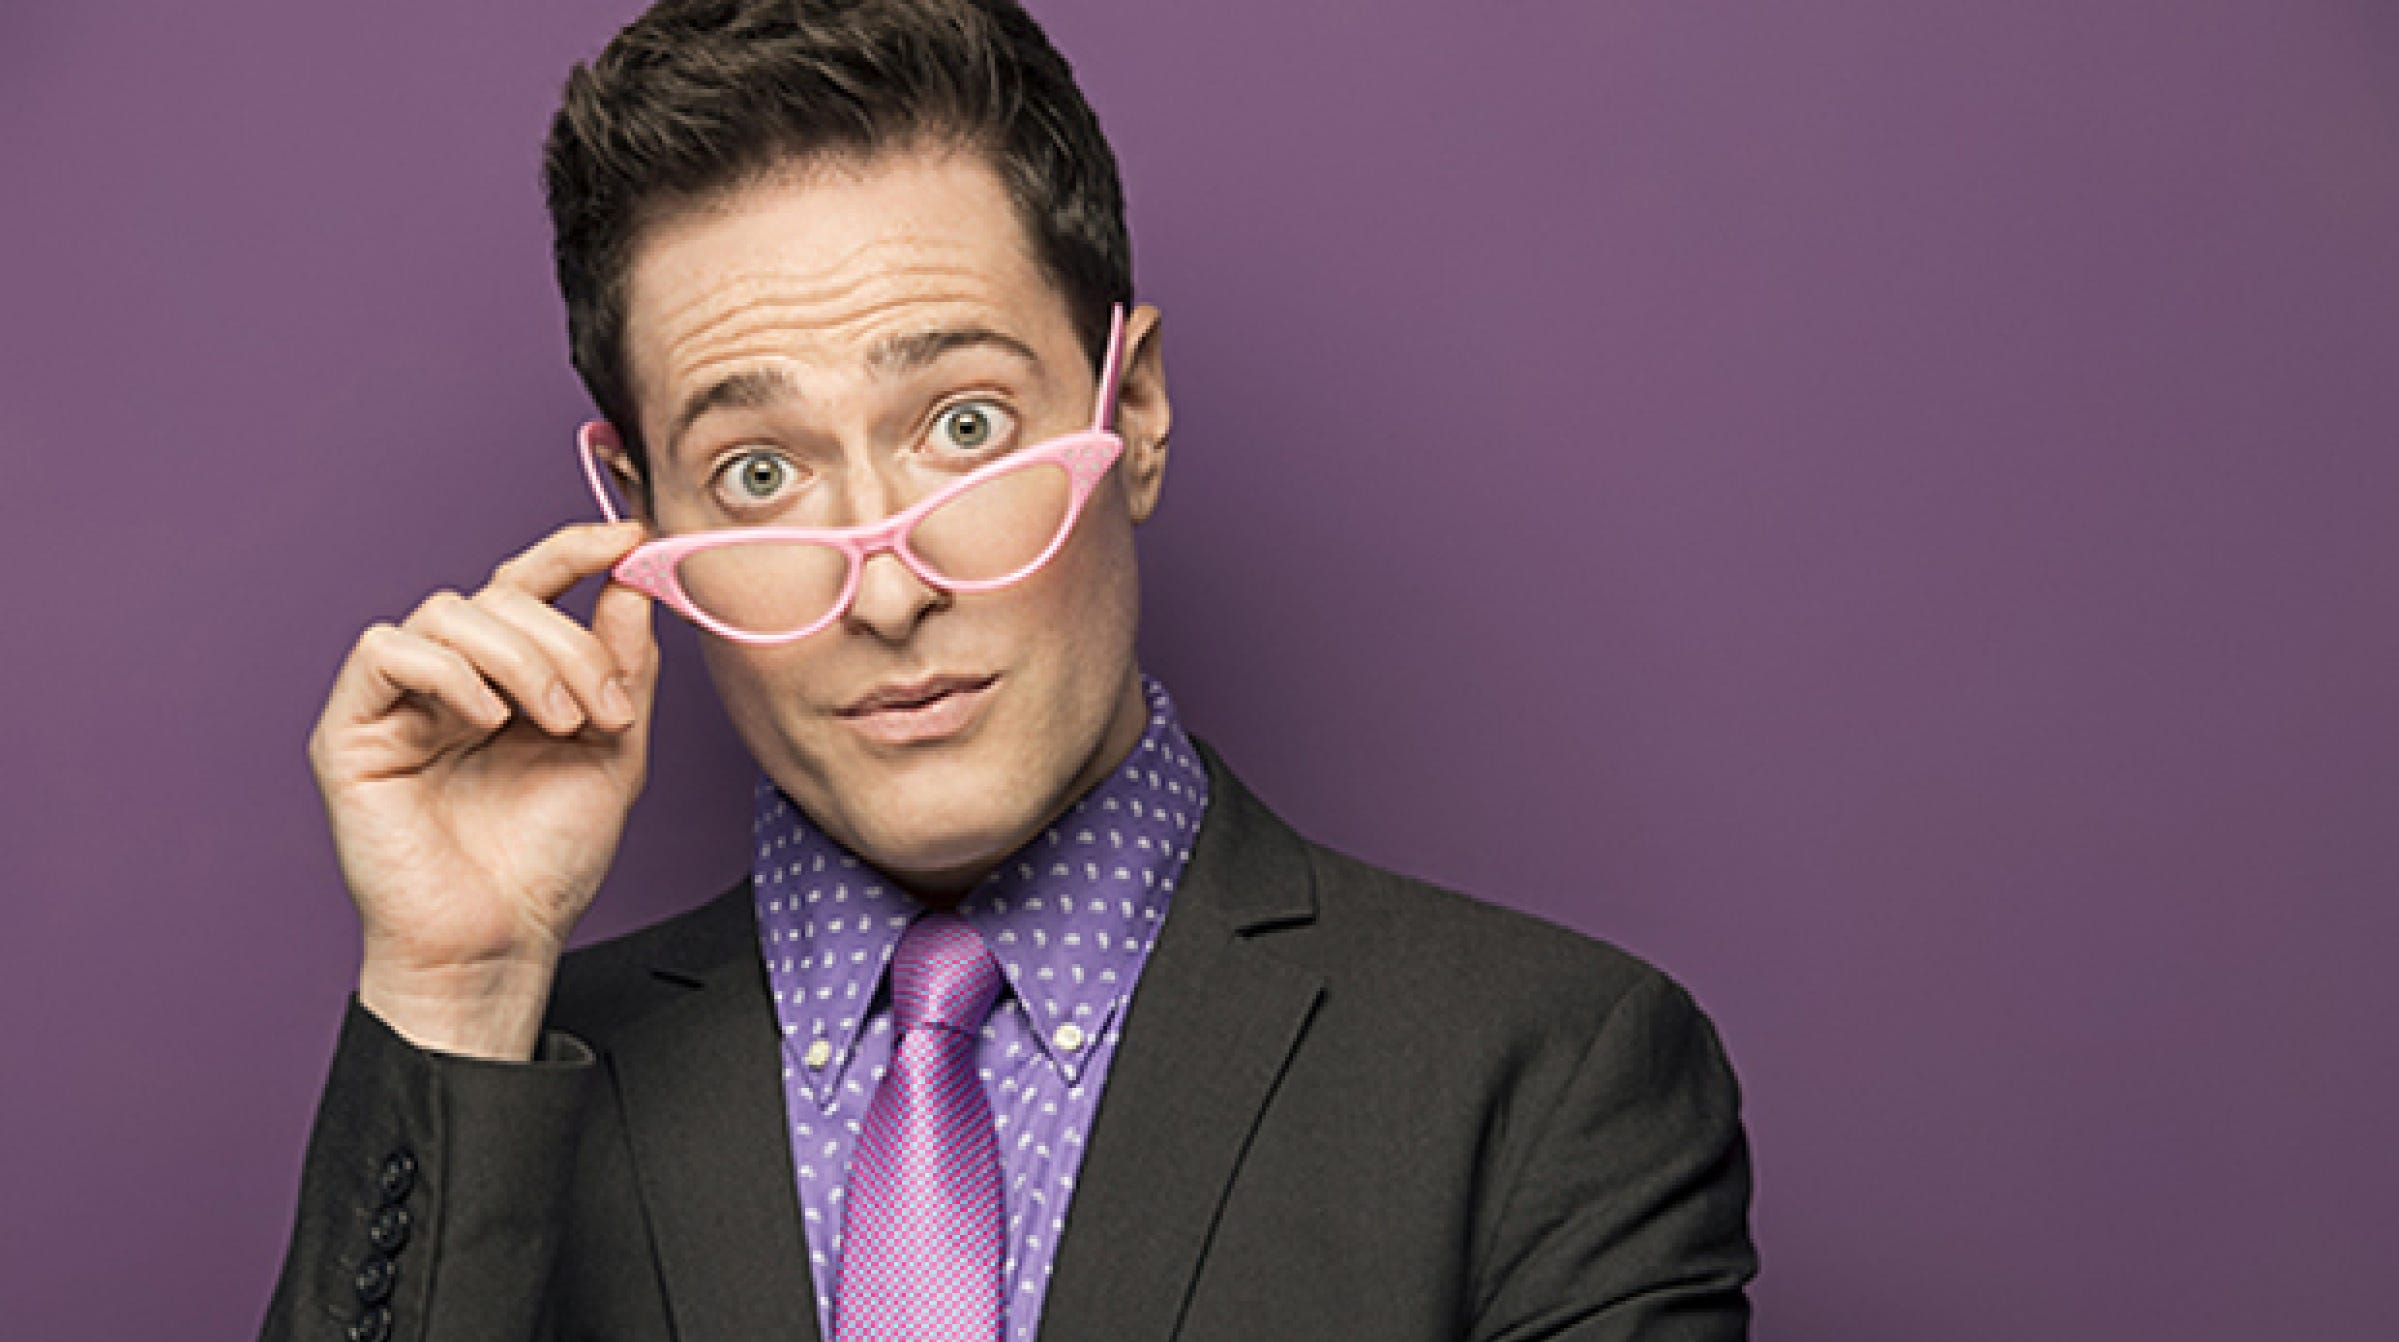 Randy Rainbow and his viral political videos are coming to Louisville